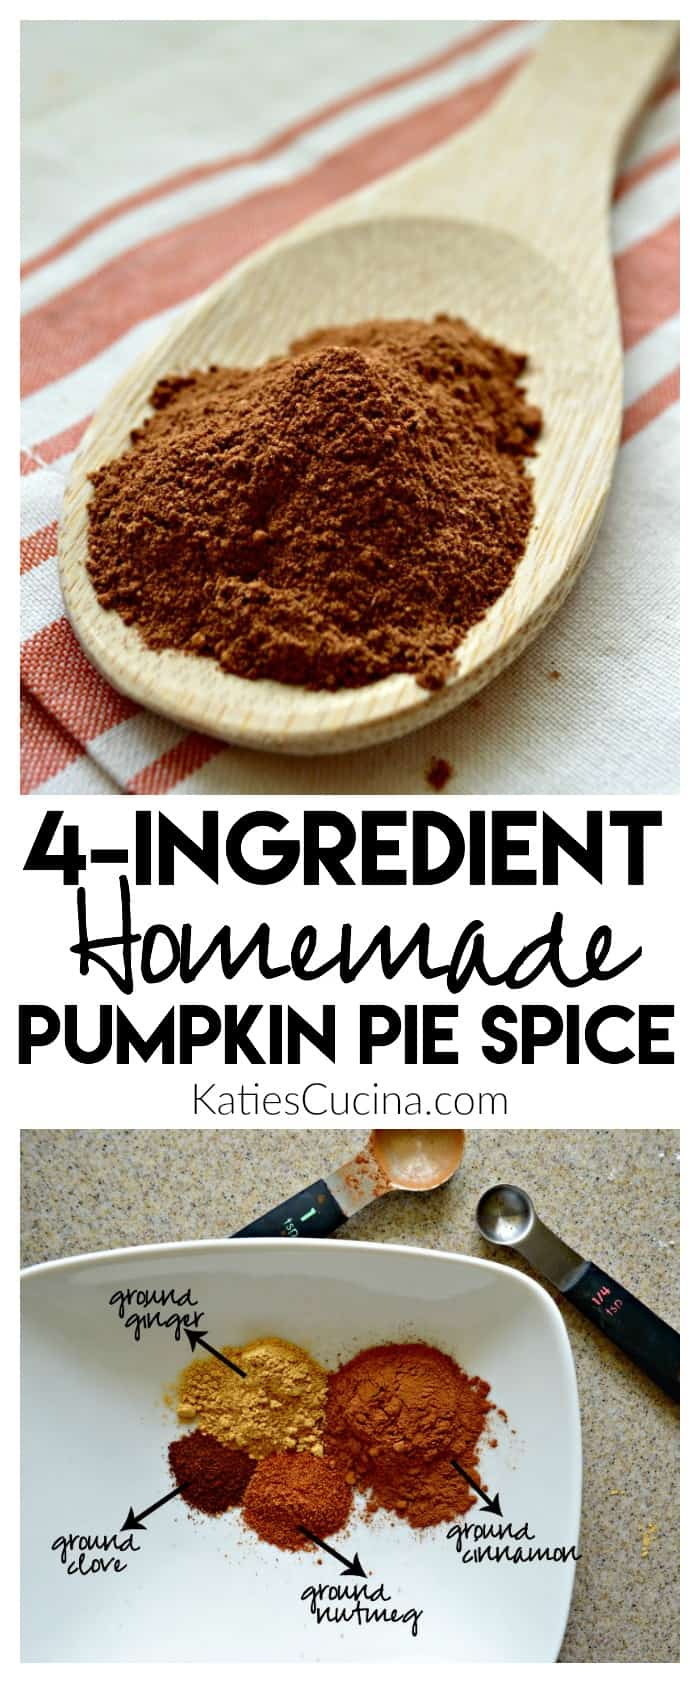 4-Ingredient Homemade Pumpkin Pie Spice